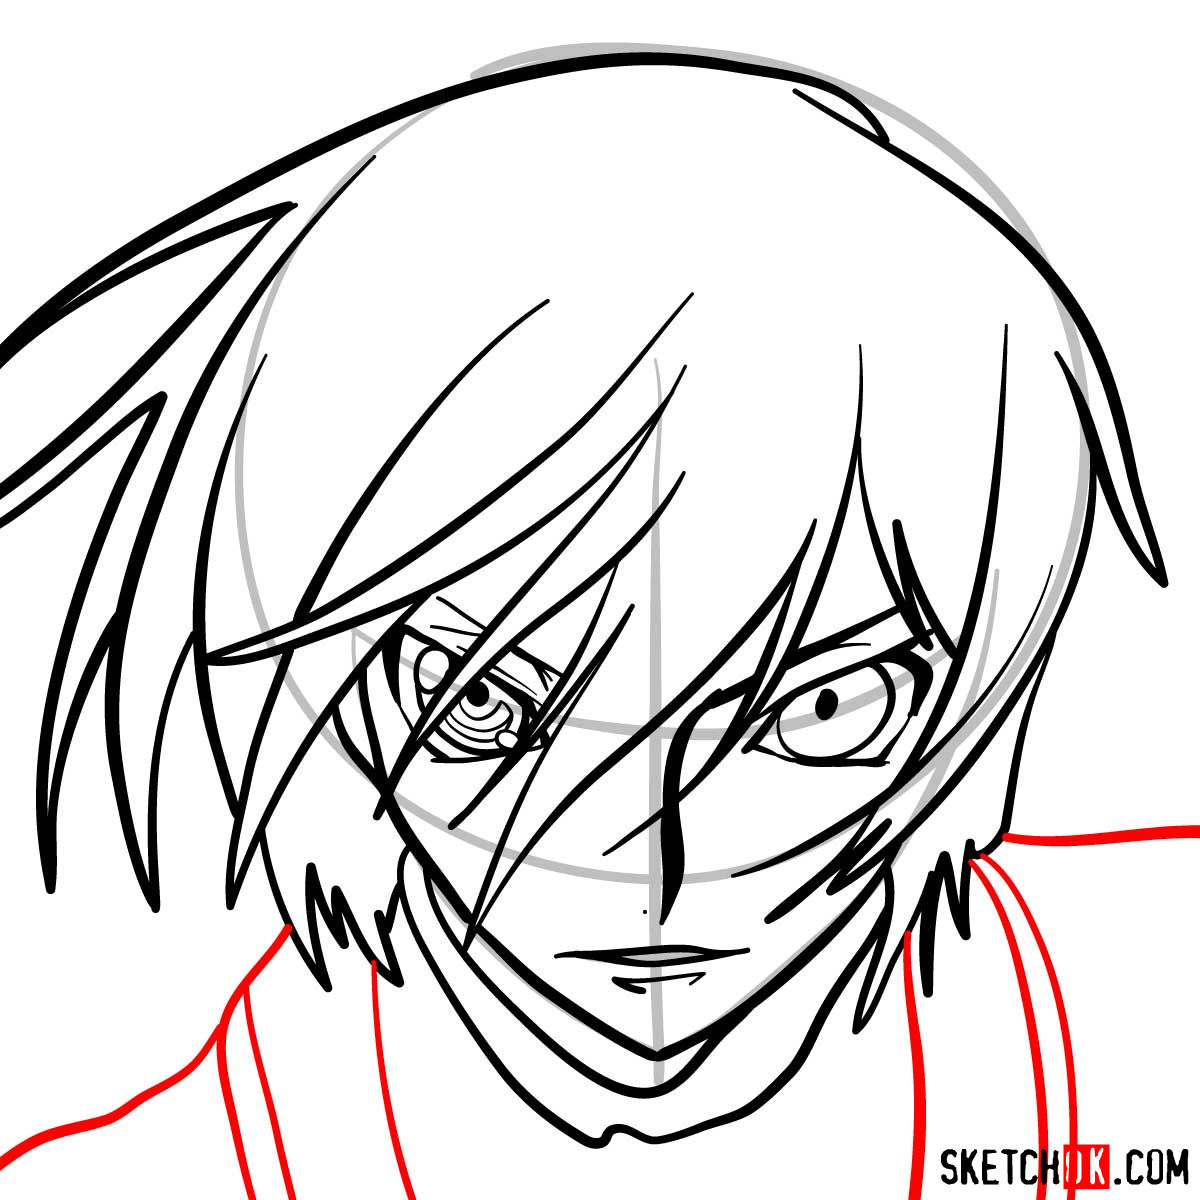 How to draw the face of Lelouch vi Britannia | Code Geass anime - step 07